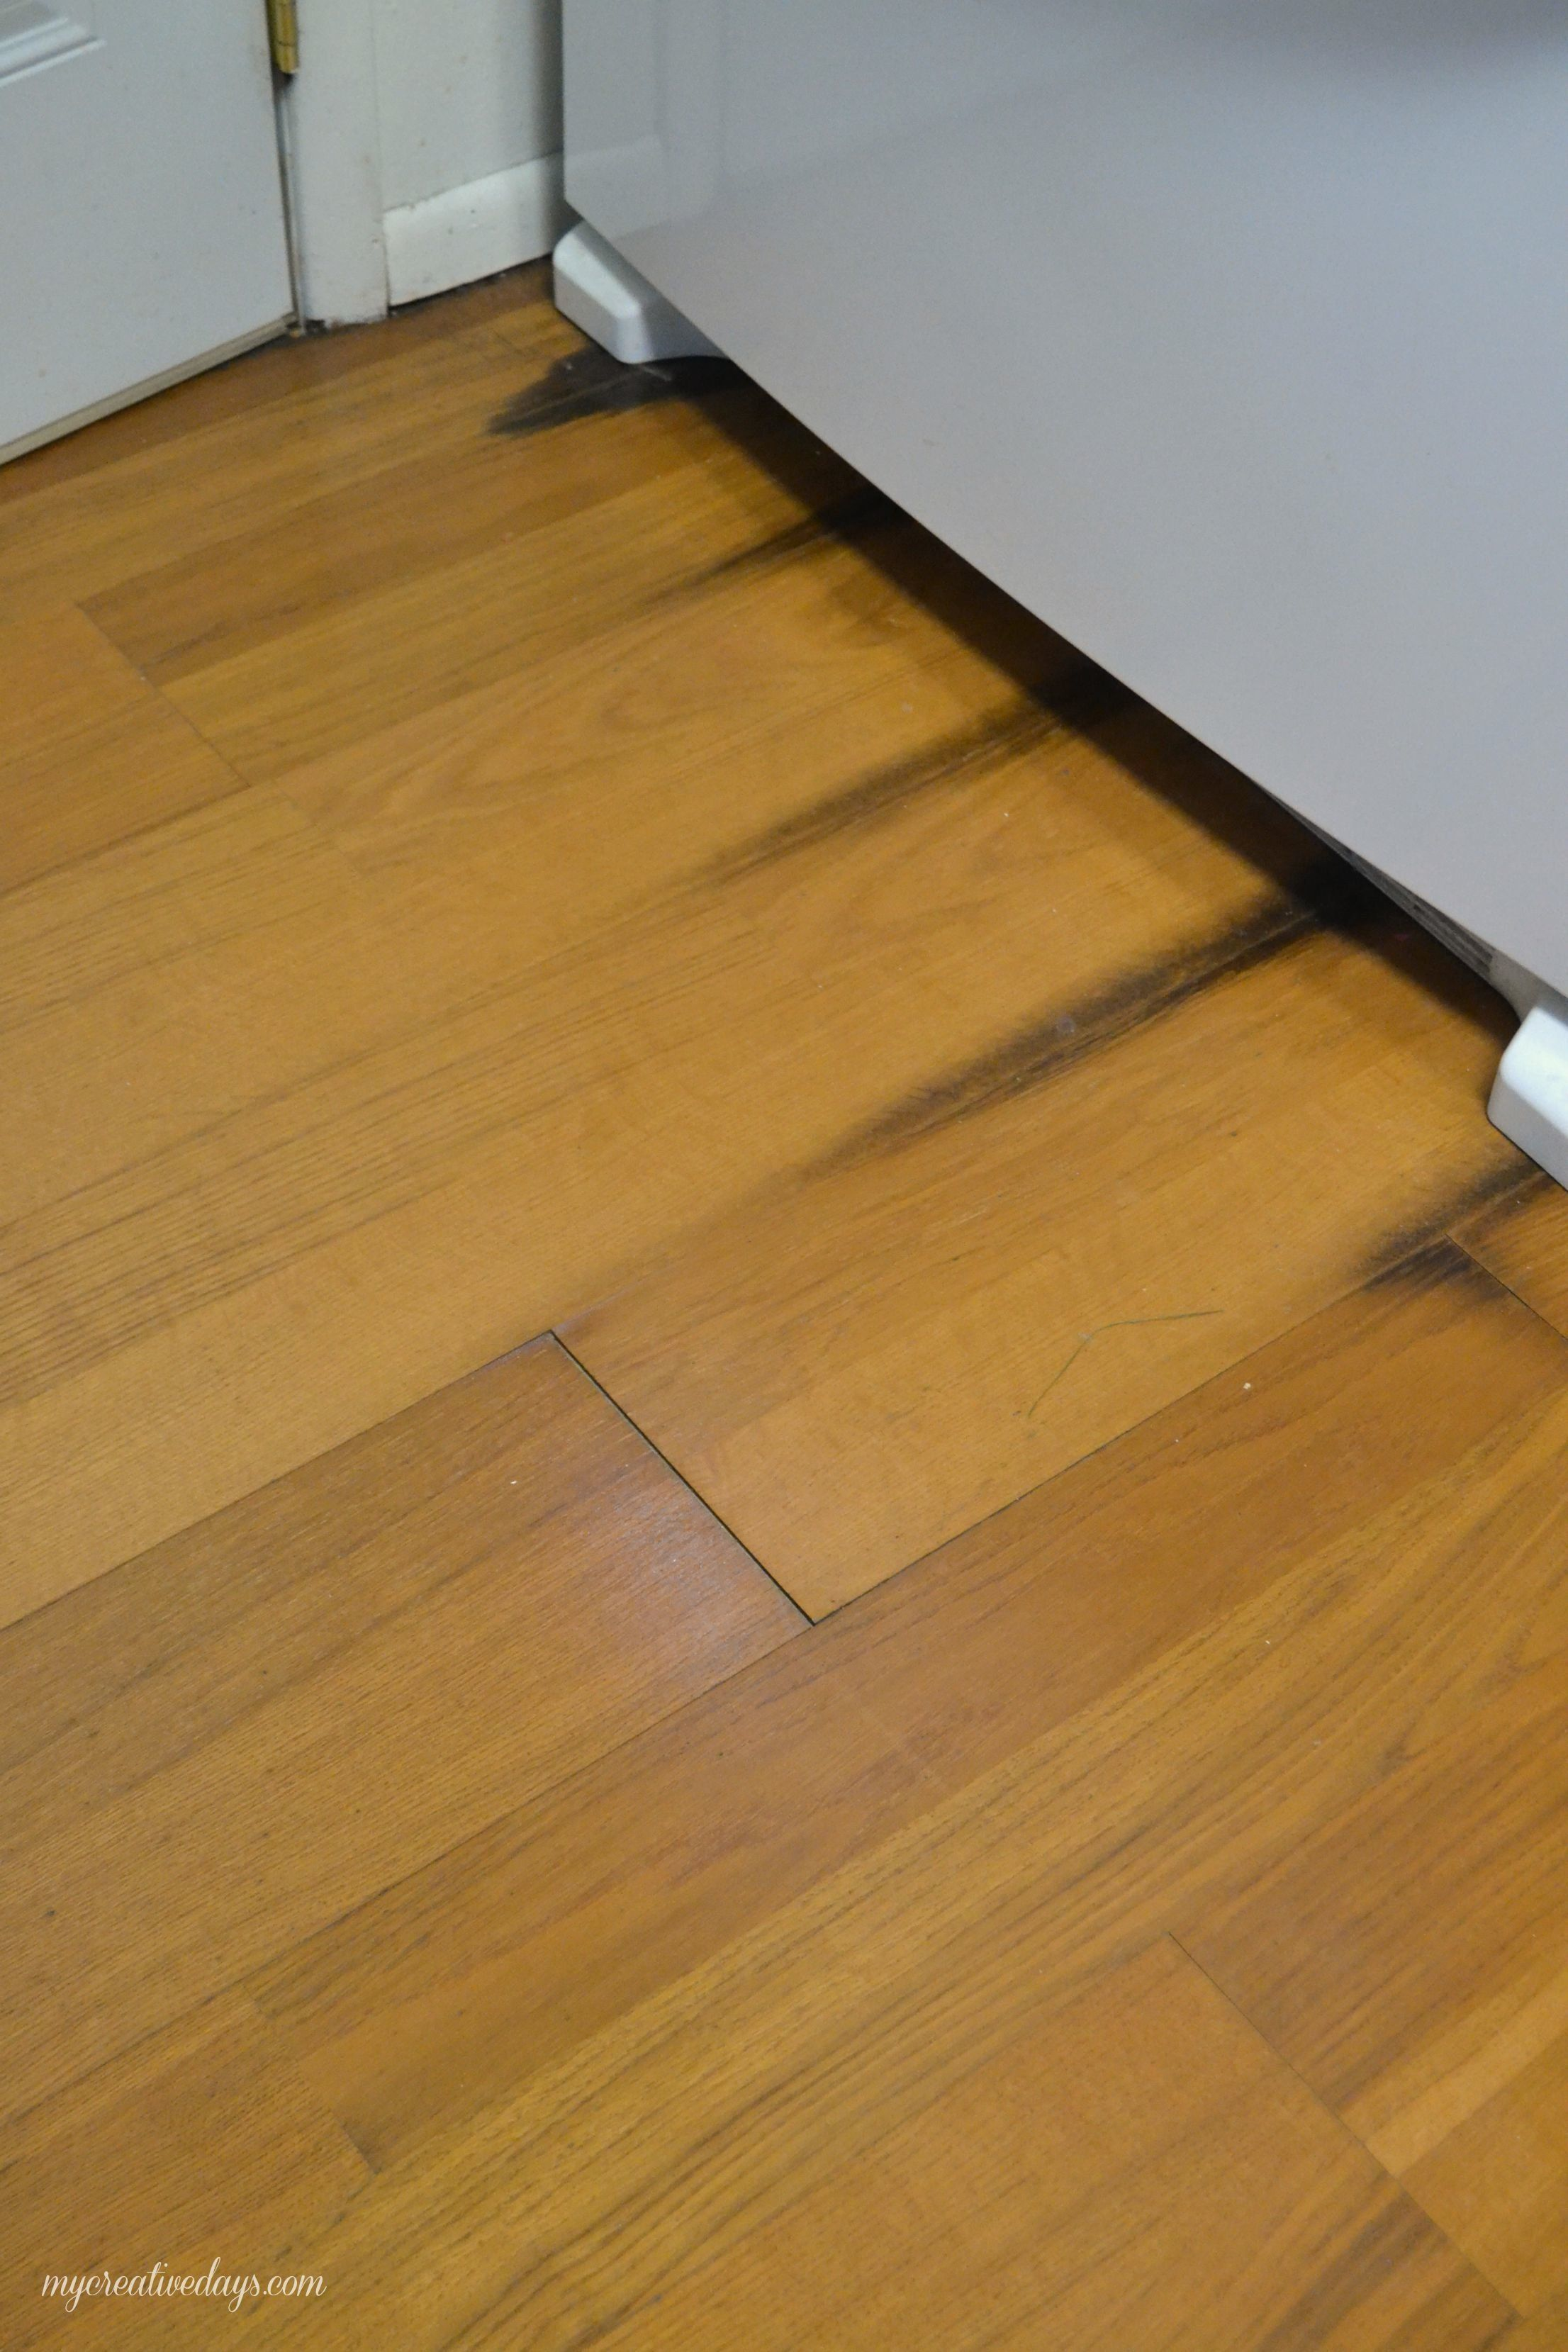 The Best Can You Lay Laminate Flooring, Can You Install Laminate Flooring Over Carpet Padding